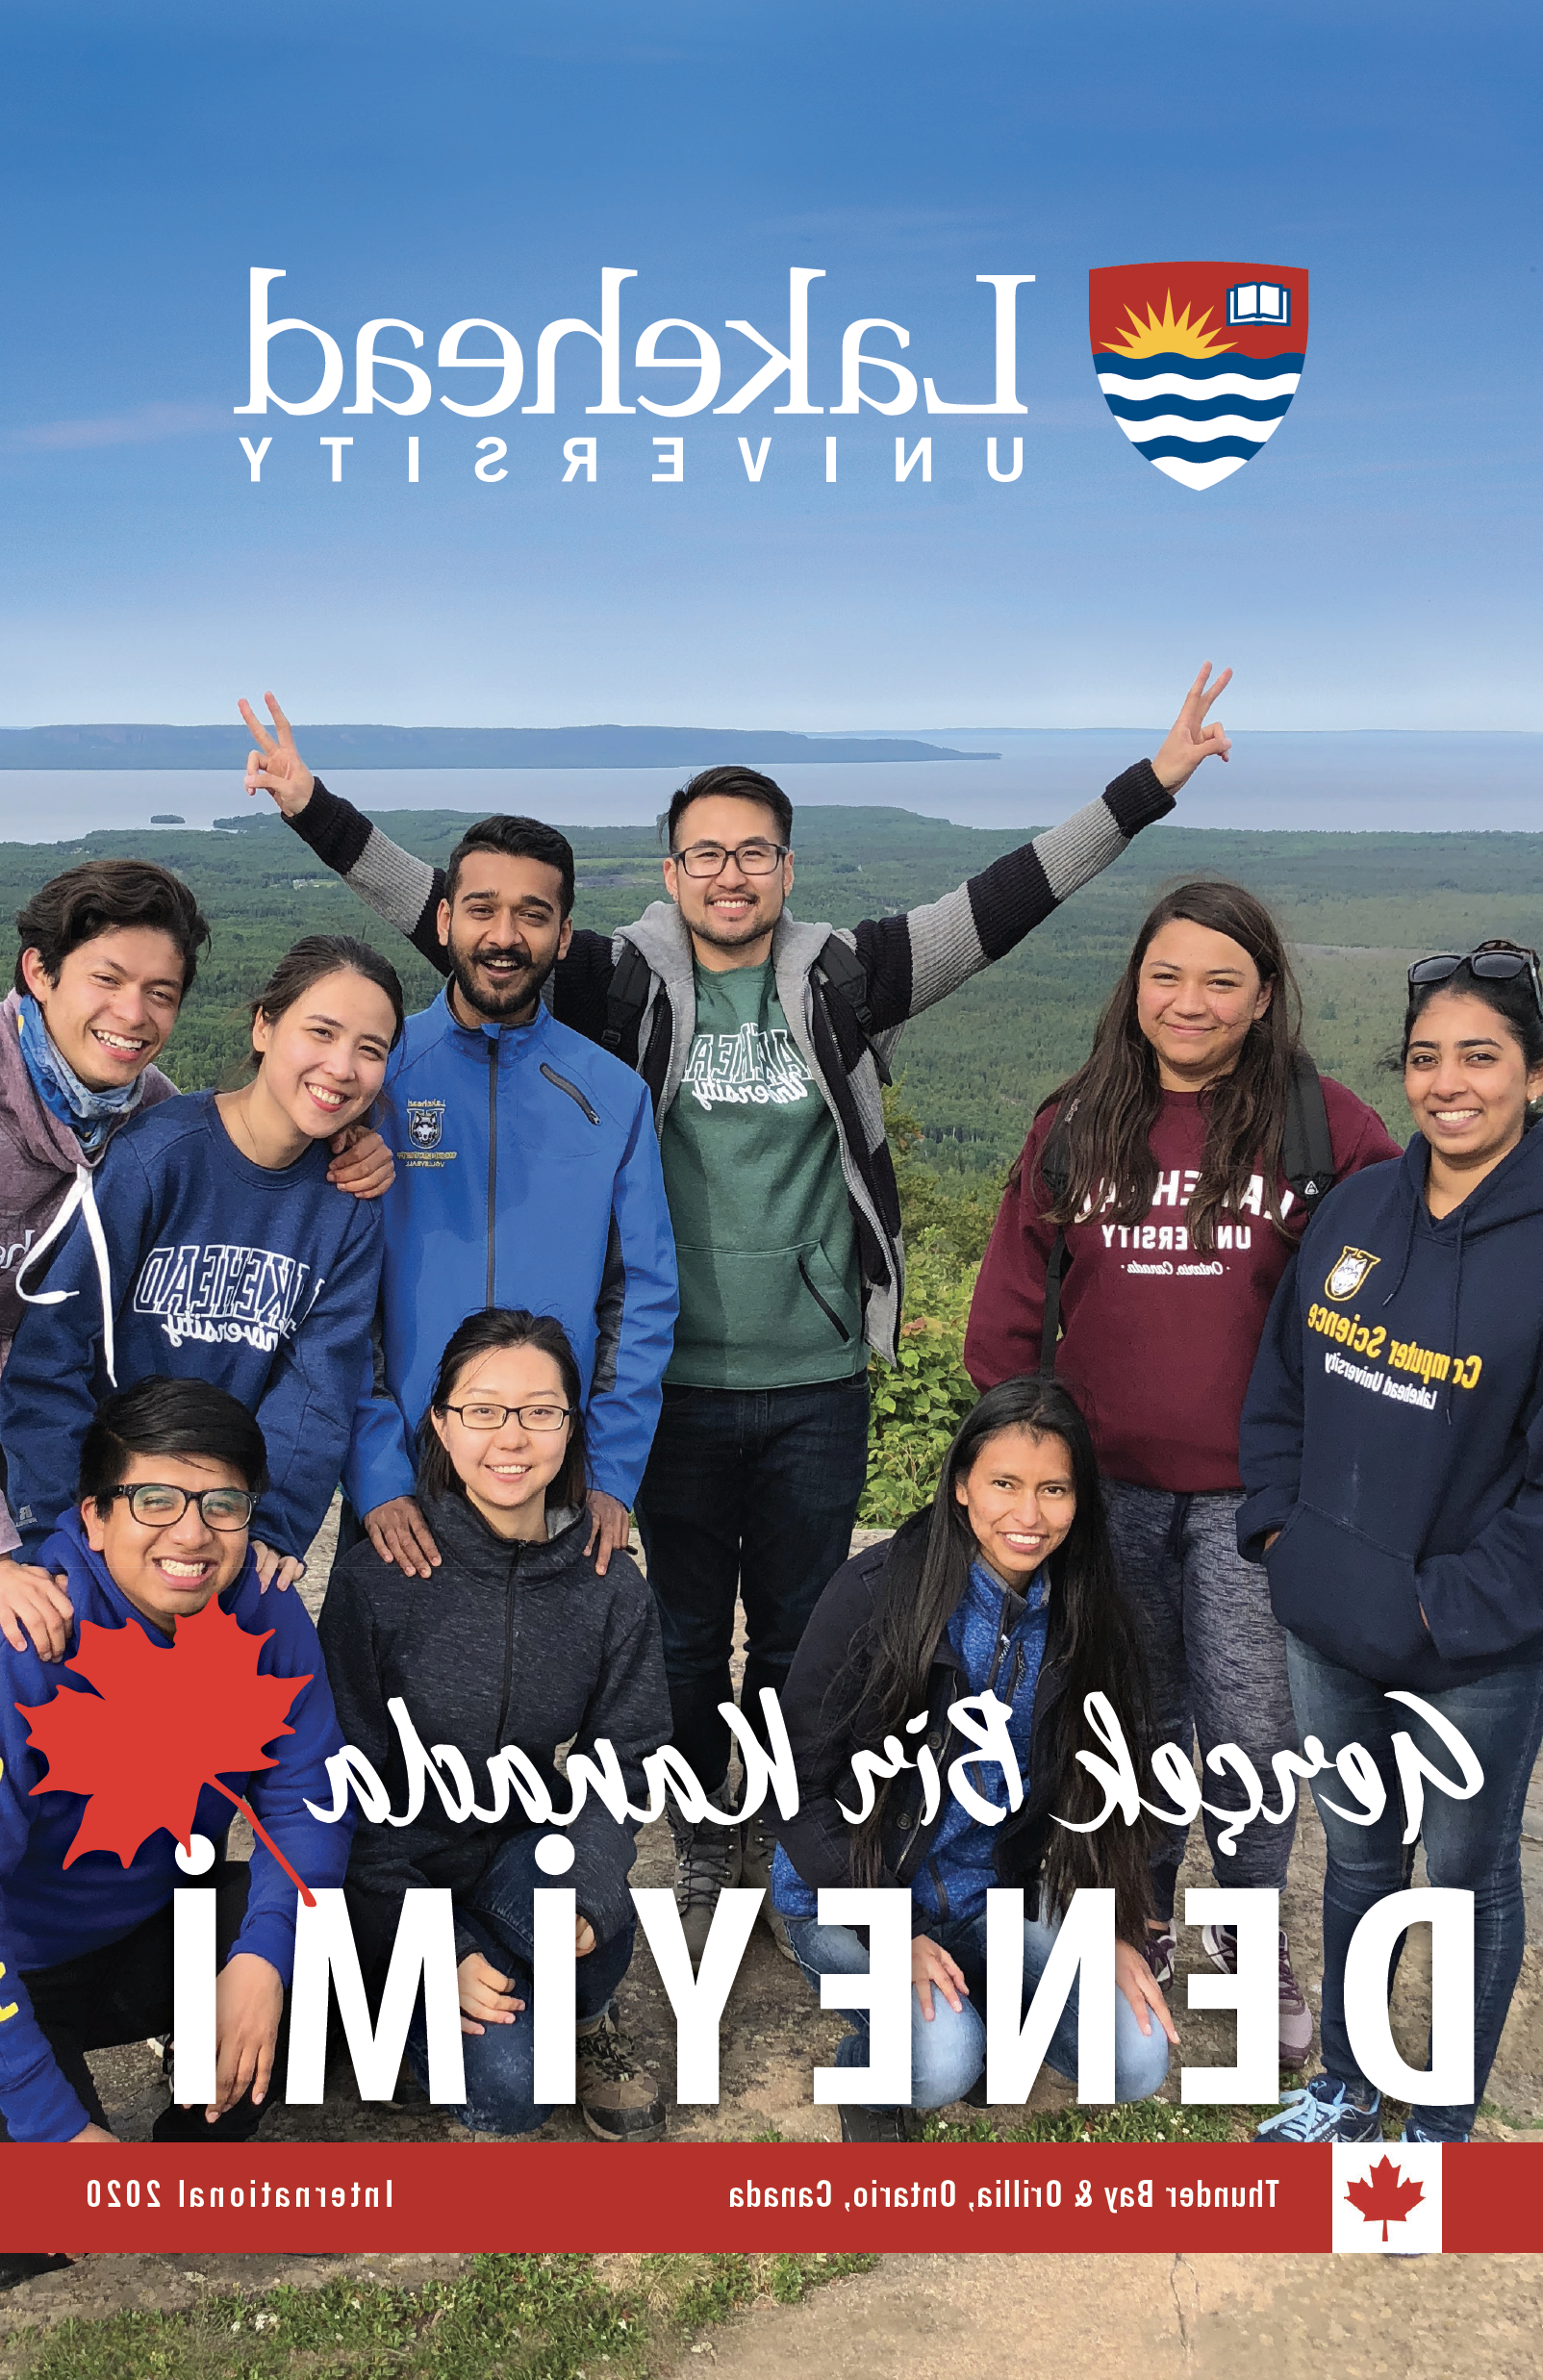 The cover of the 2020 Lakehead 国际 Brochure in Turkish.